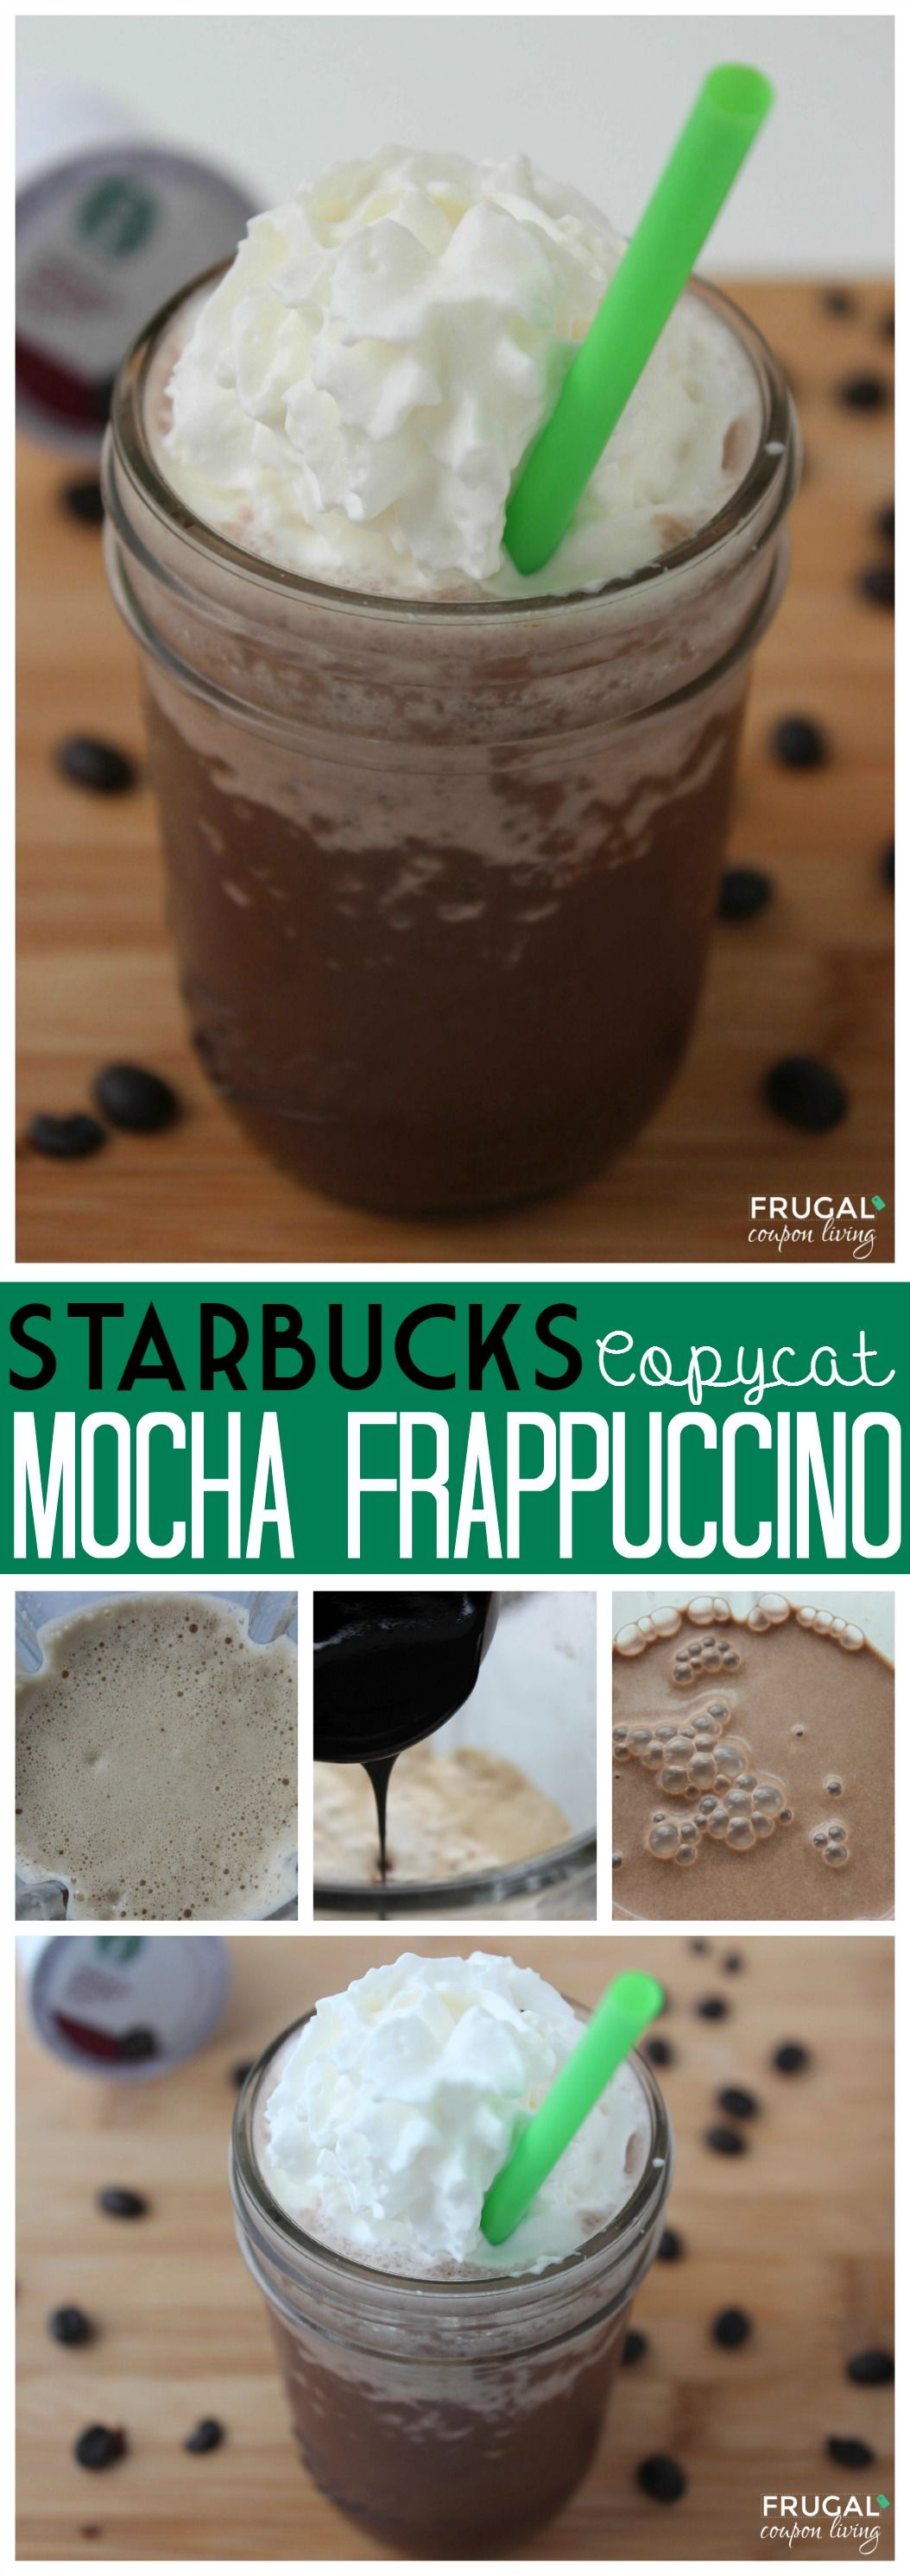 Copycat Starbucks Mocha Frappuccino and more Starbucks Copycat Recipes including Drink and Snacks on Frugal Coupon Living.